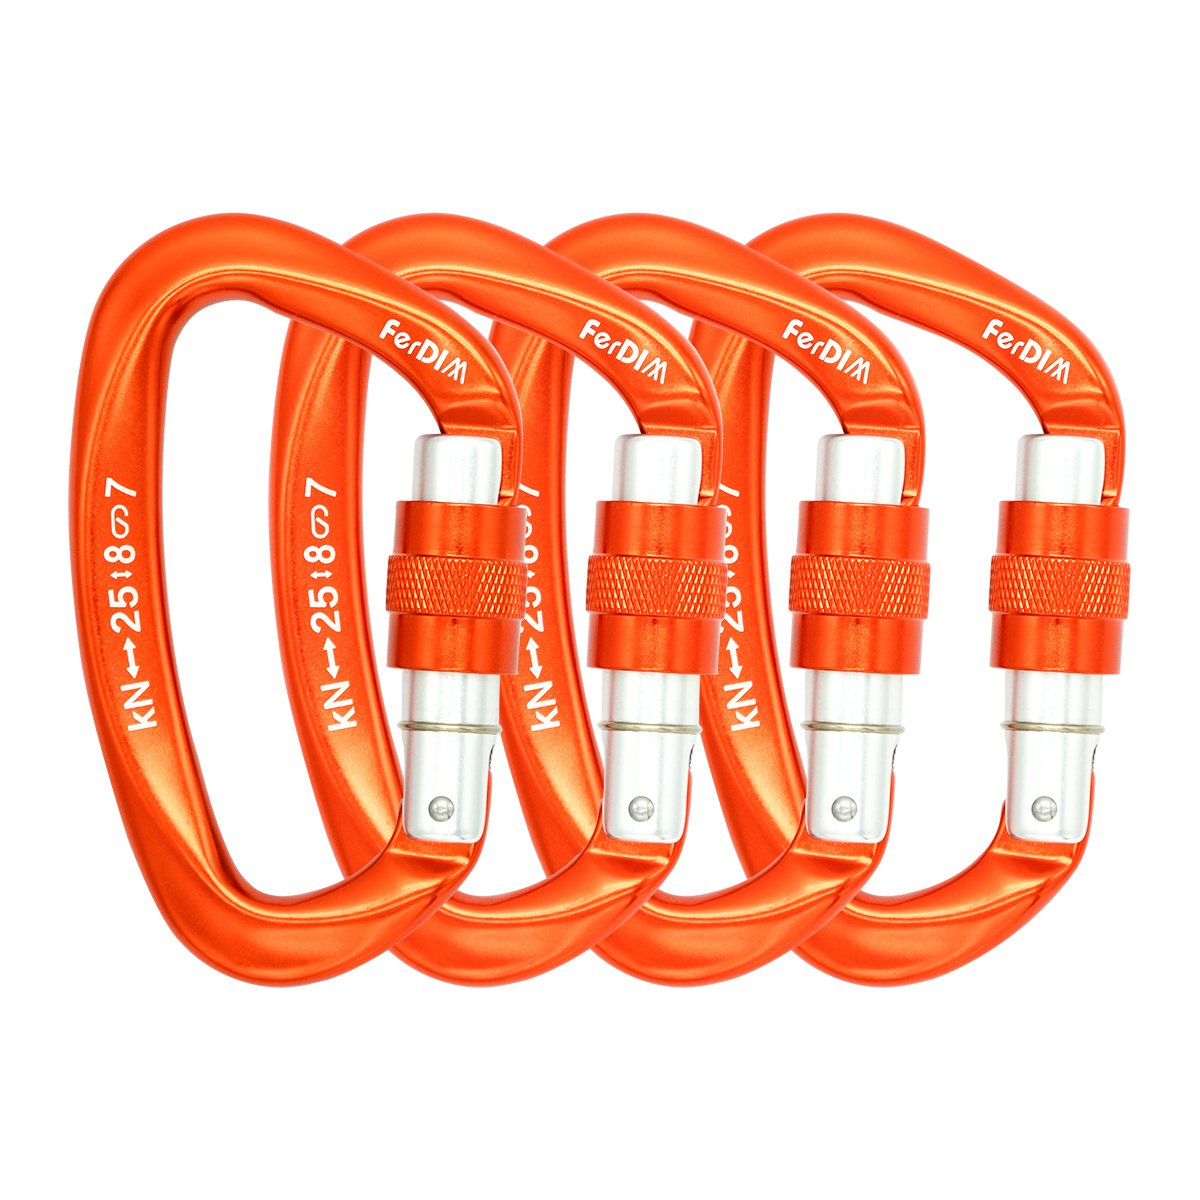 FerDIM 25KN Rock Climbing Carabiner, D-Shaped Hot-Forged Magnalium Locking Climbing Hook Holds 5511lbs with Screwgate Clip Climber Hiking Karabiner Outdoor Sport Tools CE Certified (Orange, 4/Pack)